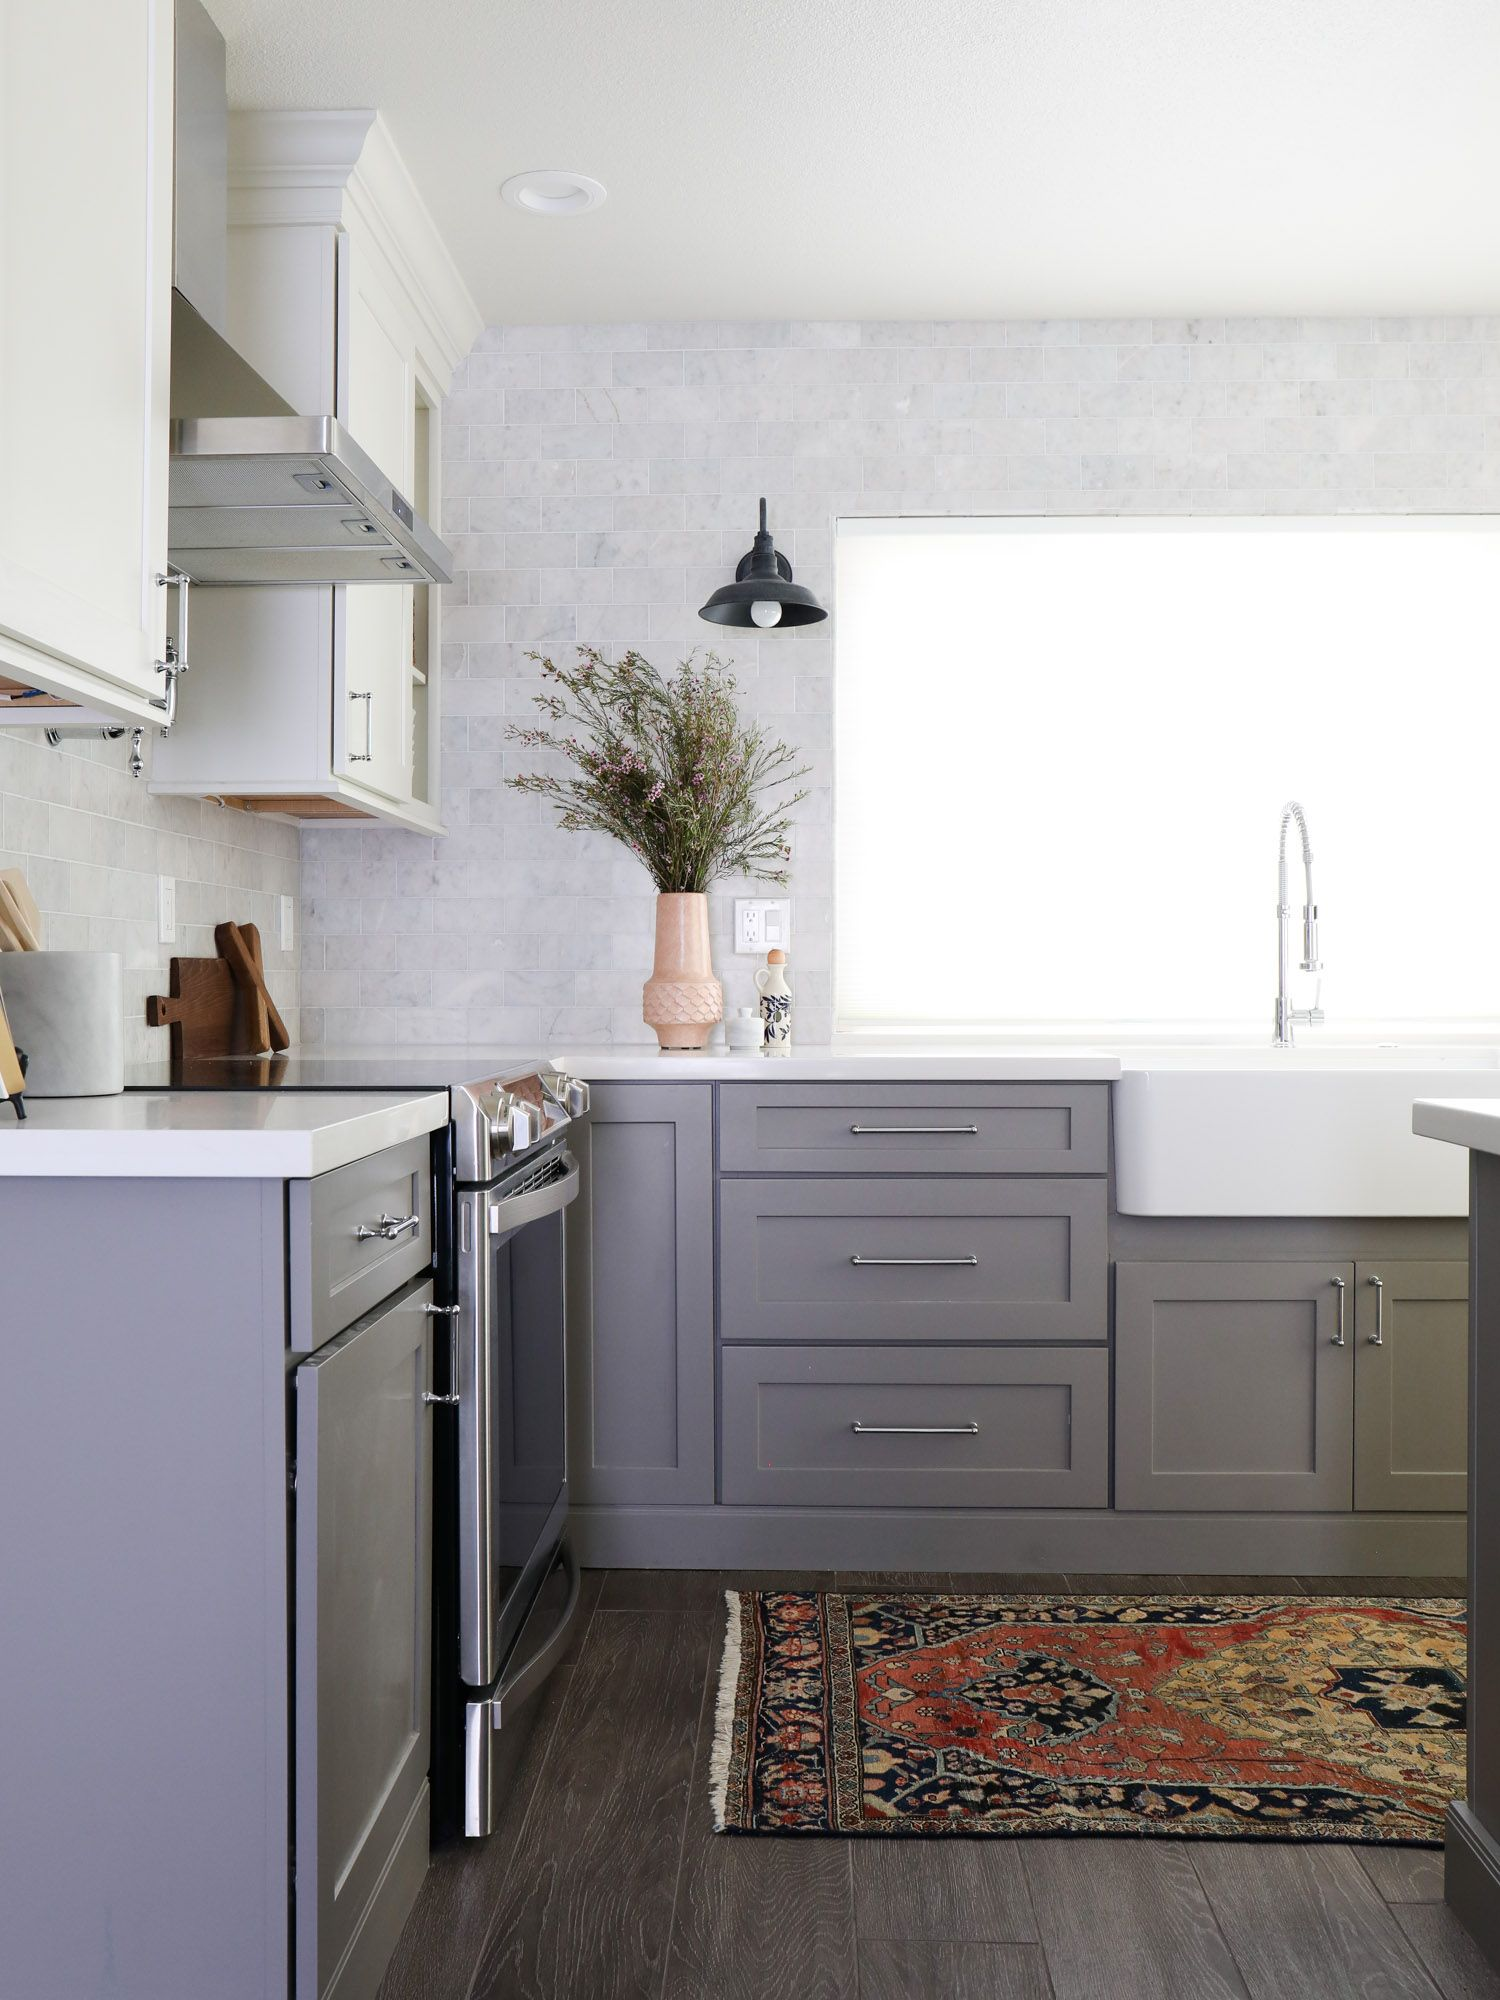 ProjectMyKindaKitchen Reveal | Wall faucet, Marble subway tiles and ...